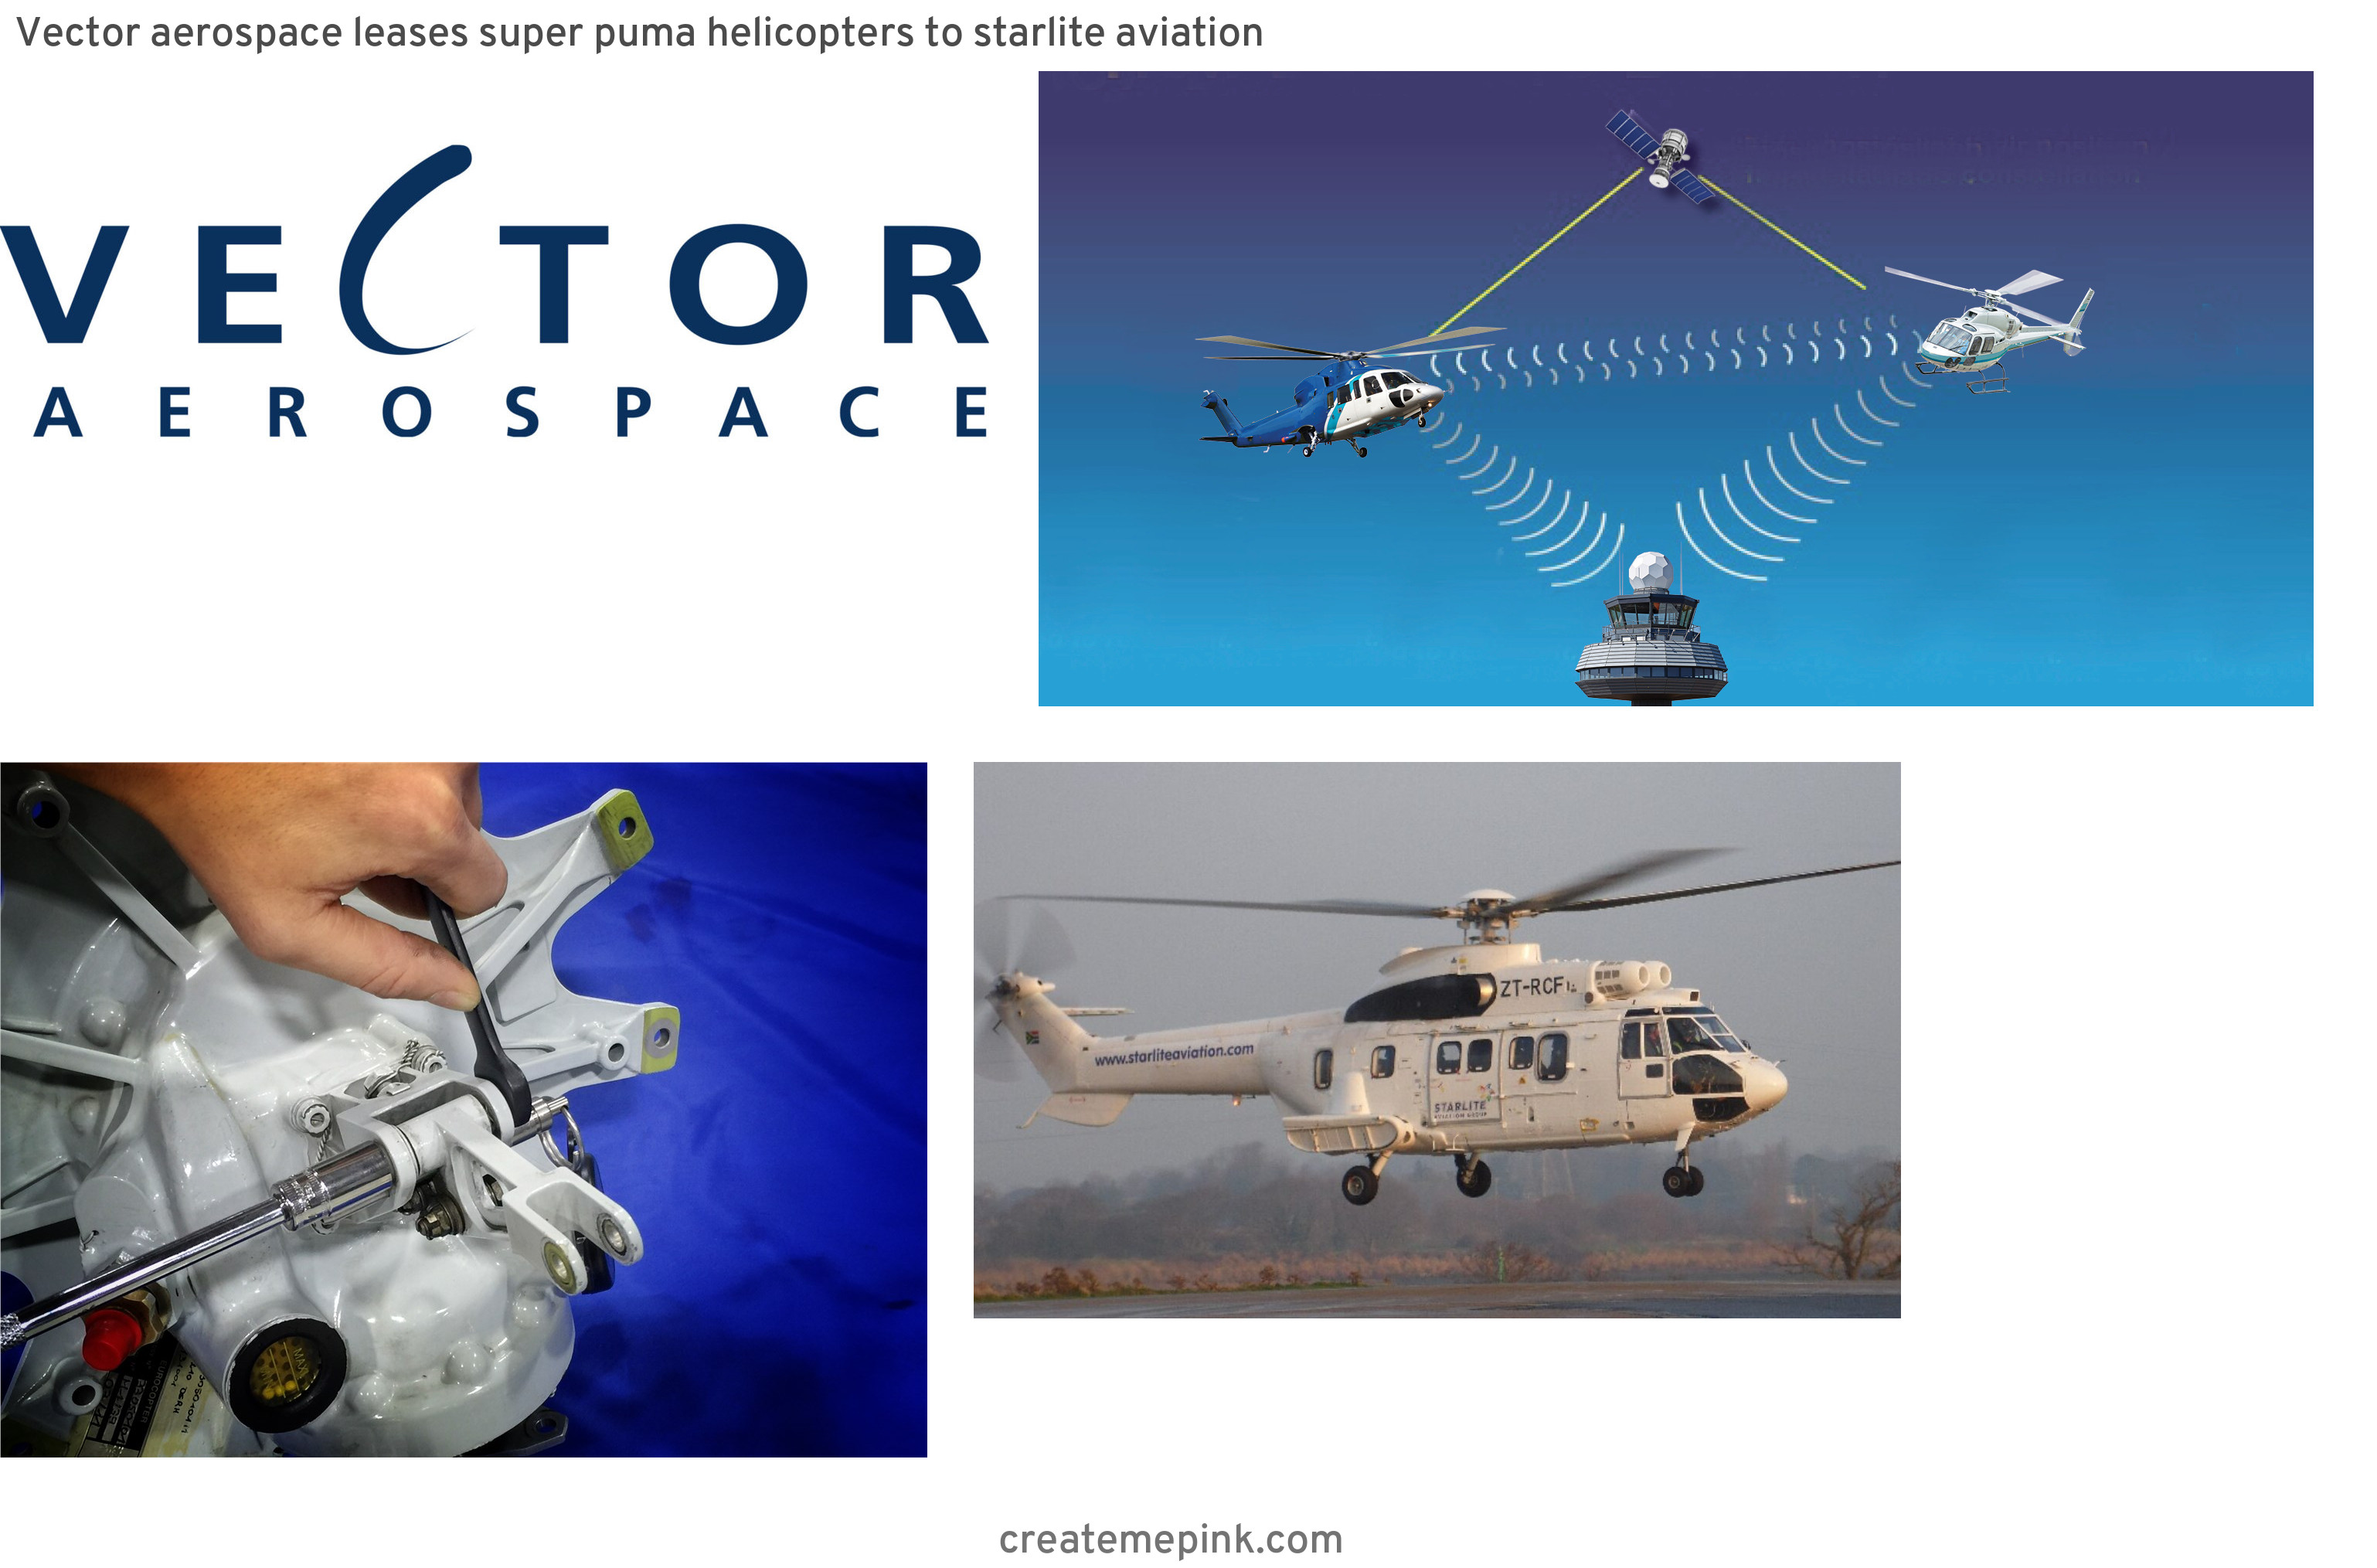 Vector Aerospace Airbus: Vector Aerospace Leases Super Puma Helicopters To Starlite Aviation